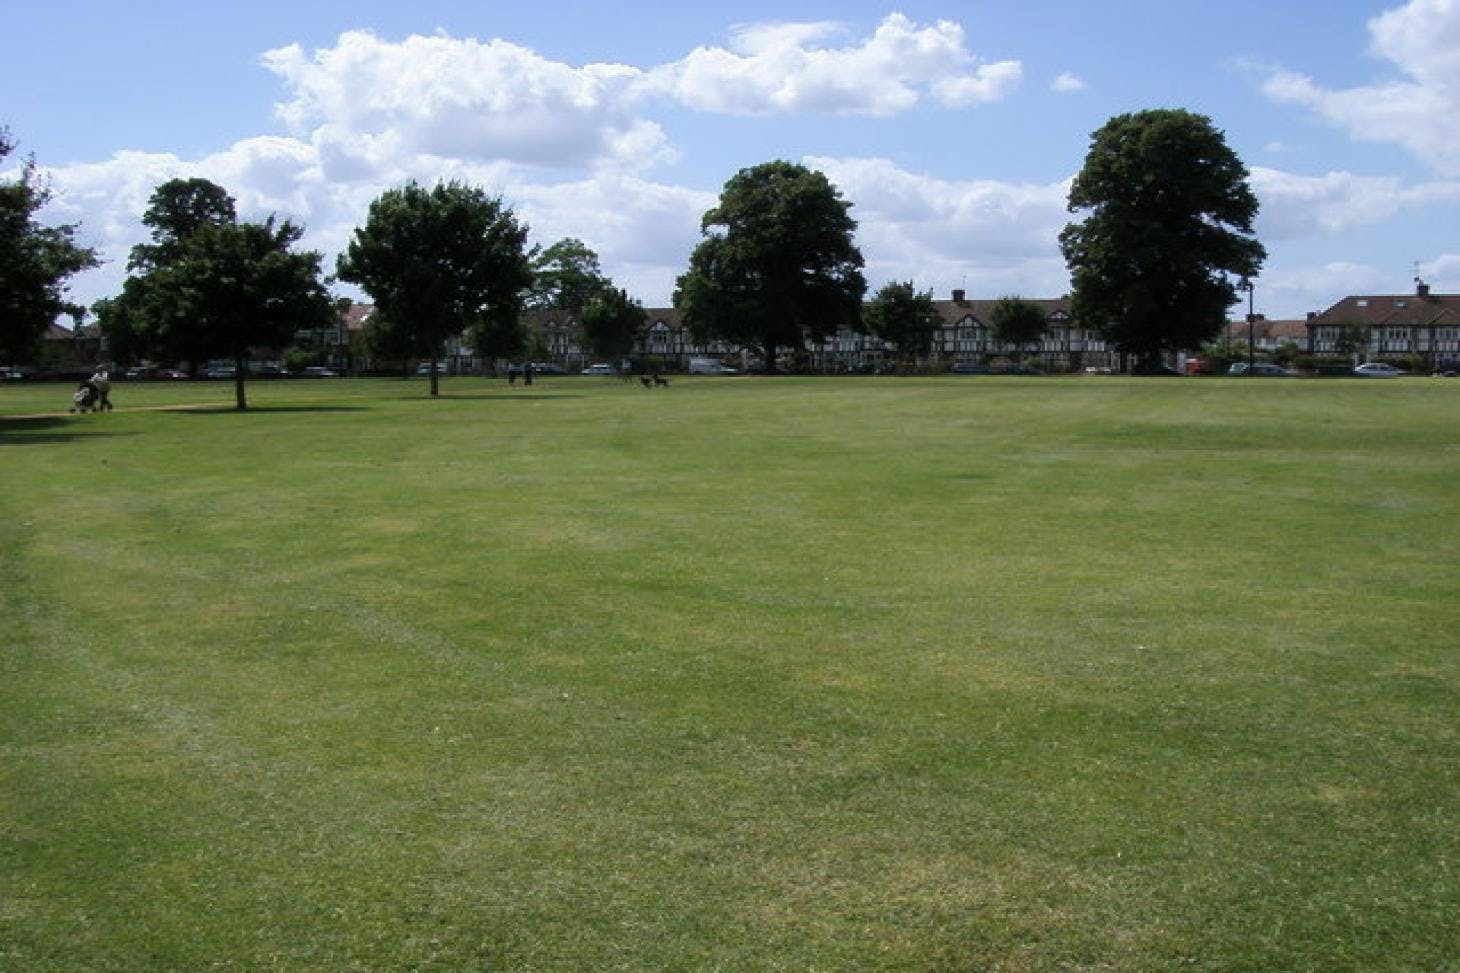 Latchmere Recreation Ground Full size | Grass cricket facilities